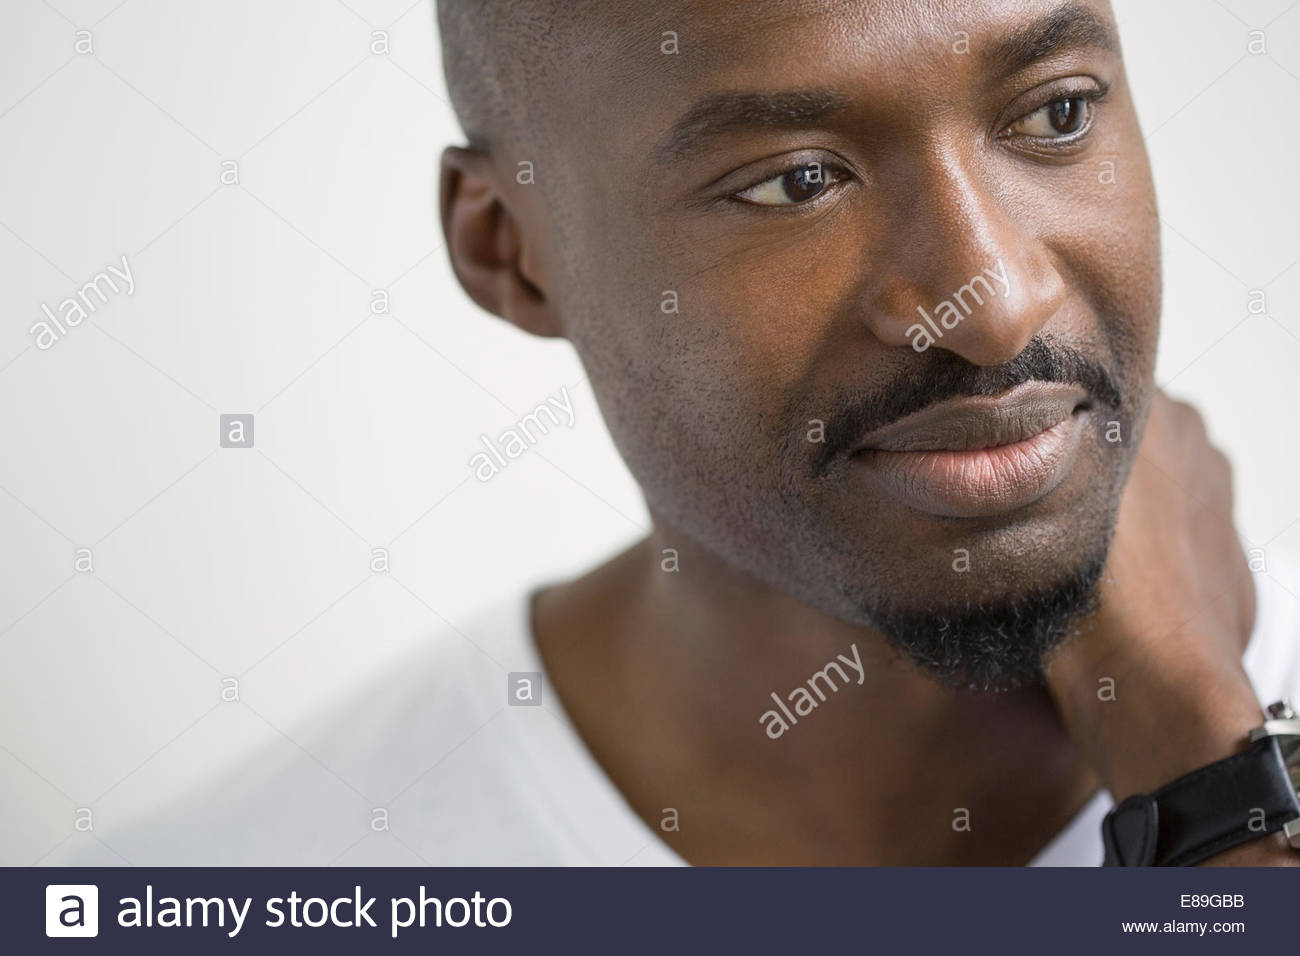 Close up portrait of pensive man looking away - Stock Image